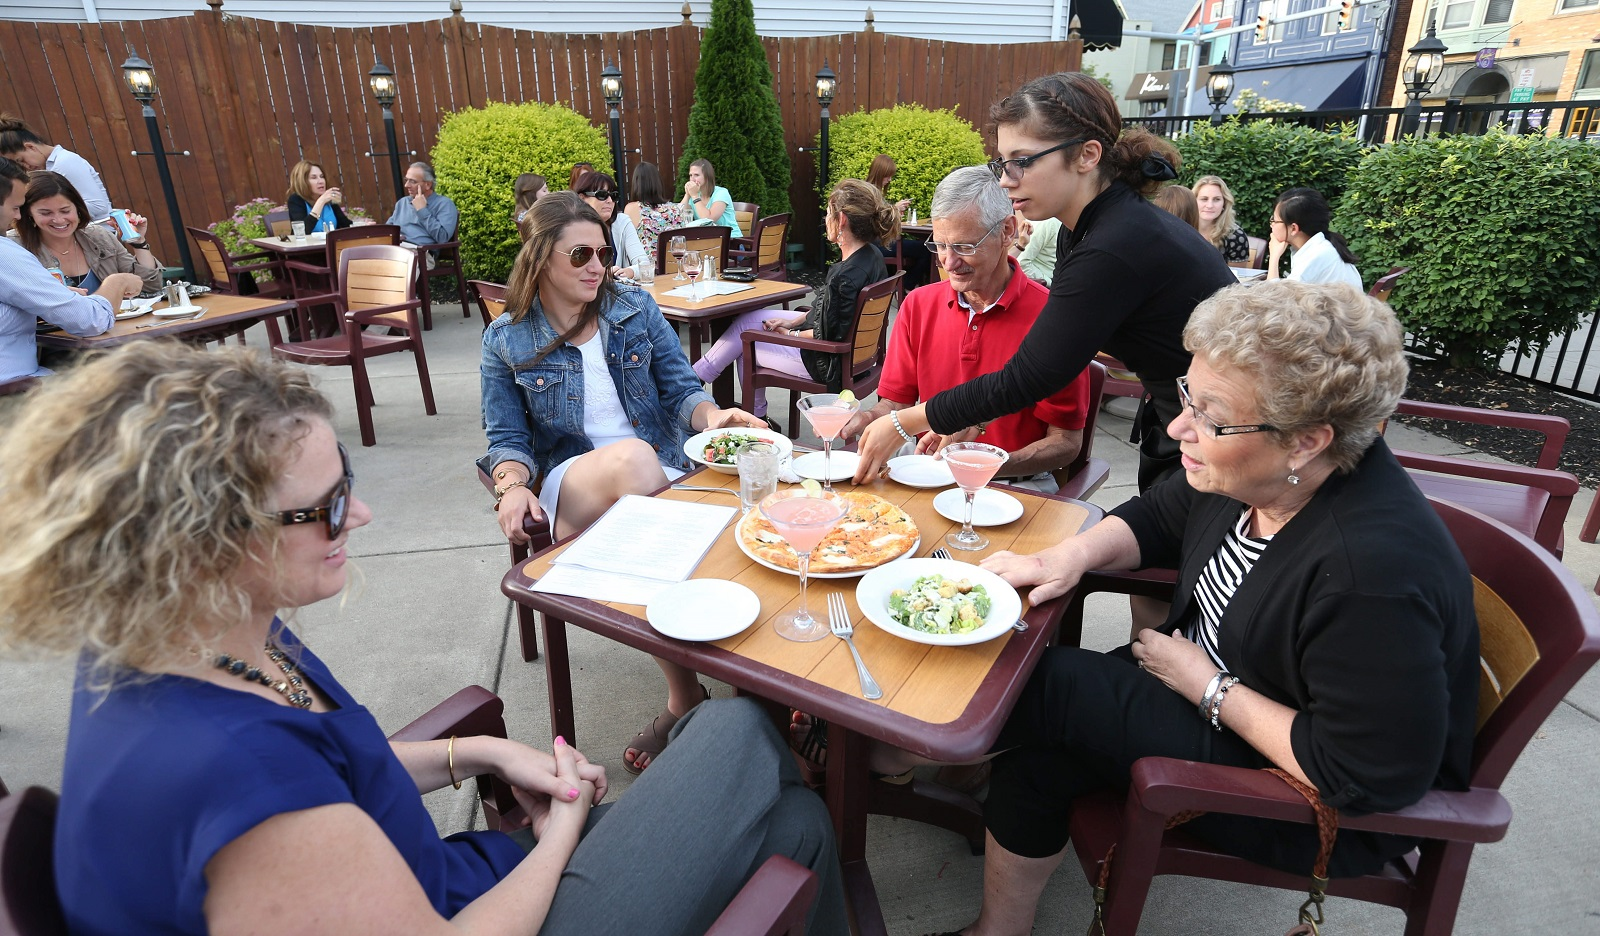 As the weather improves, Cecelia's will open its spacious patio for brunch. (Sharon Cantillon/Buffalo News)